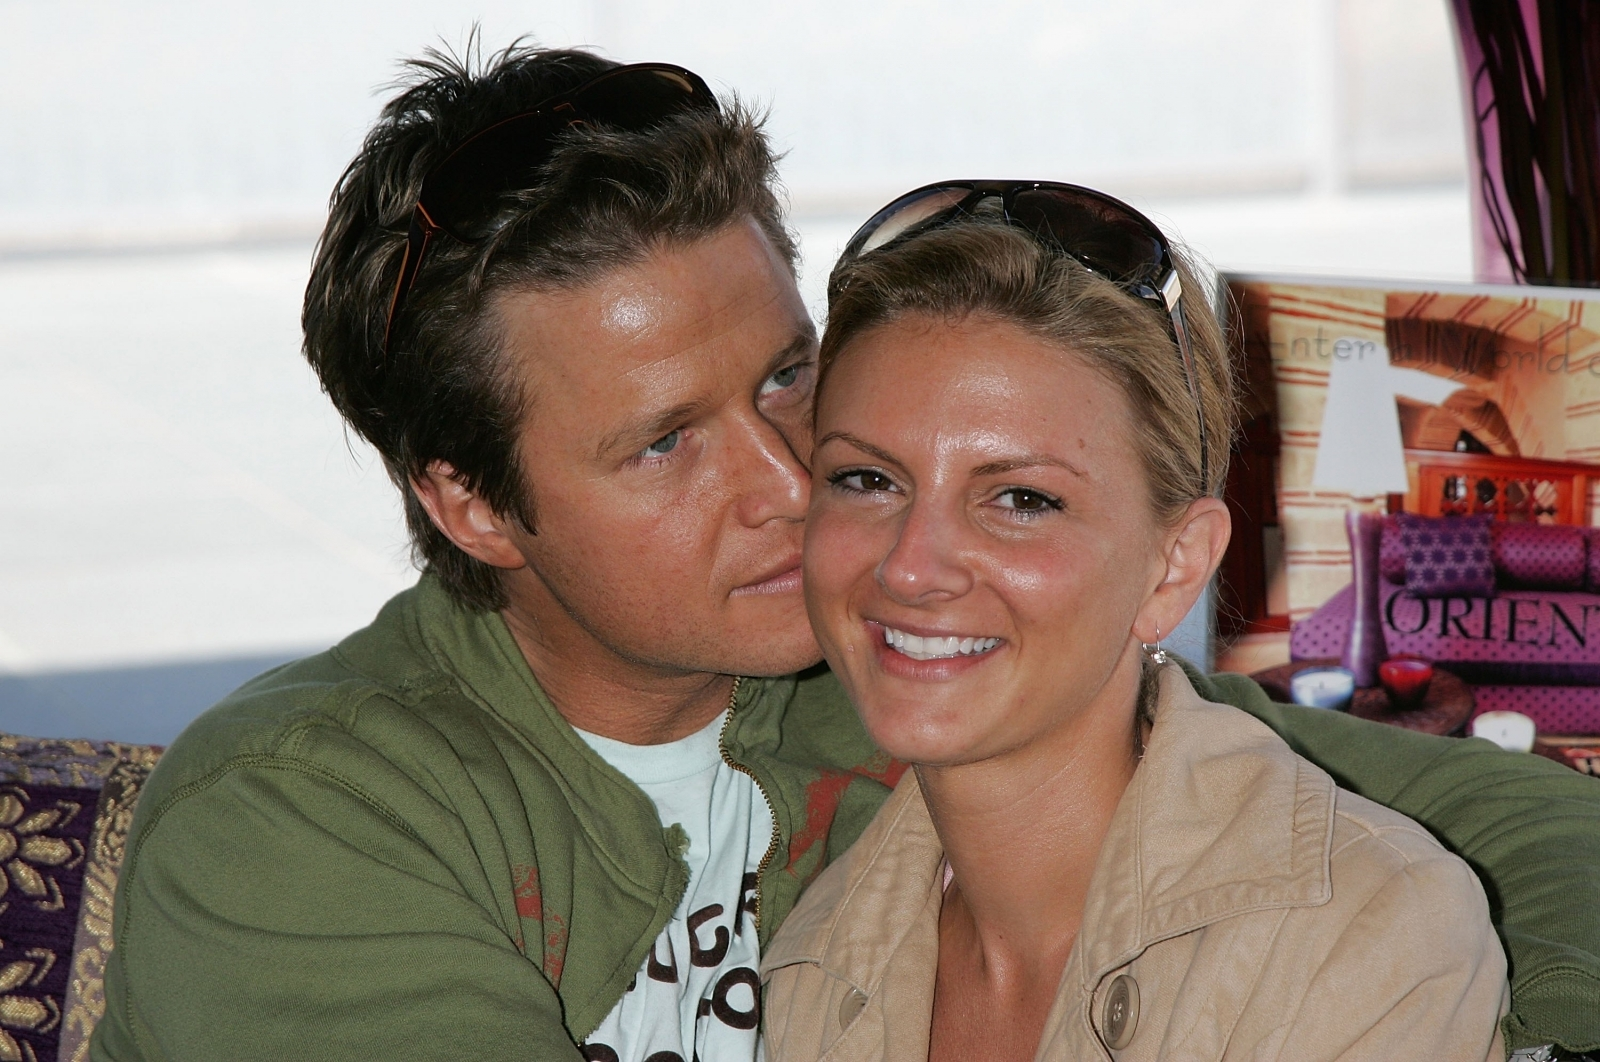 Billy Bush and Sydney Davis